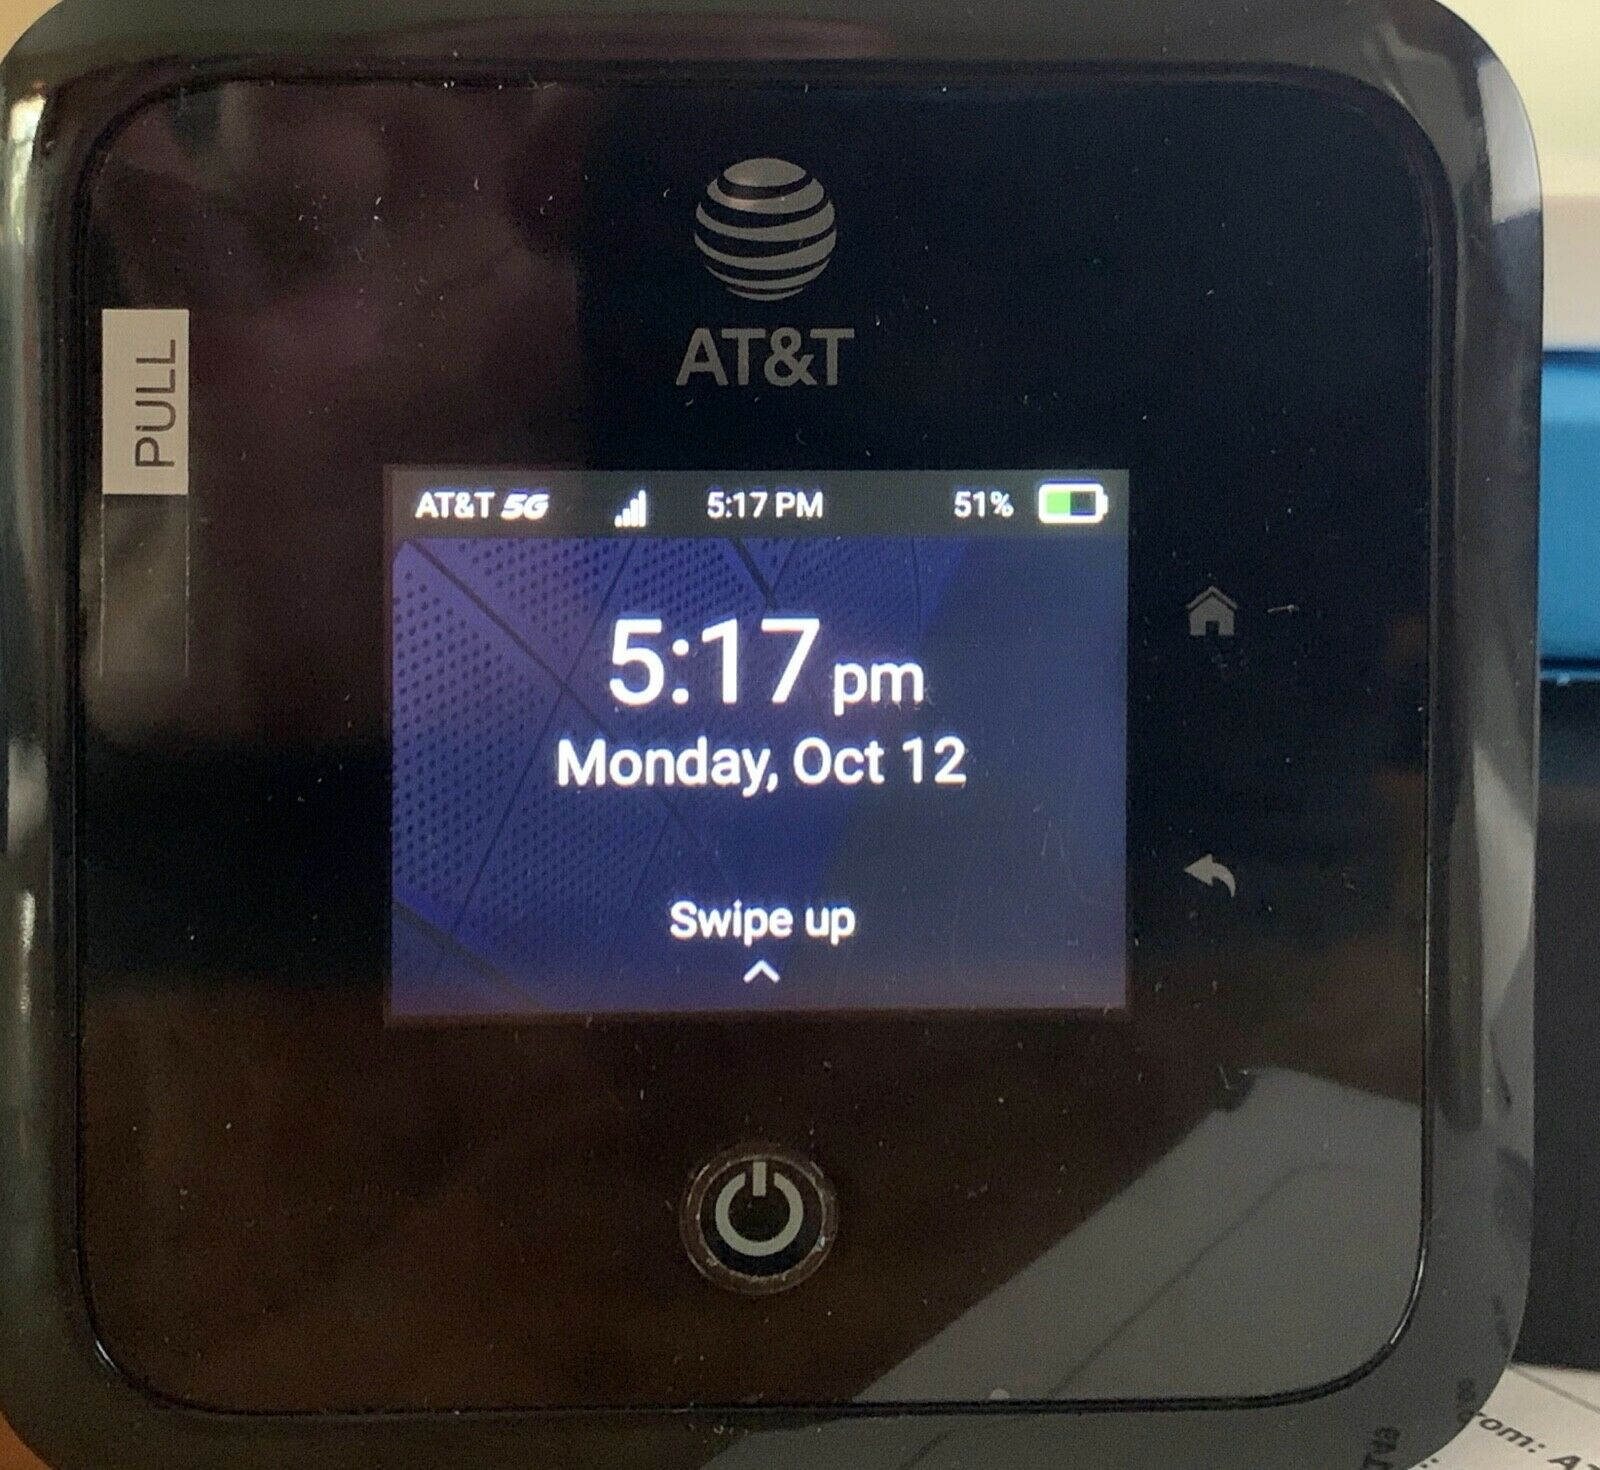 AT&T Nighthawk 5G Mobile Hotspot Pro MR5100 - New / Open Box Includes all Parts. Buy it now for 419.99